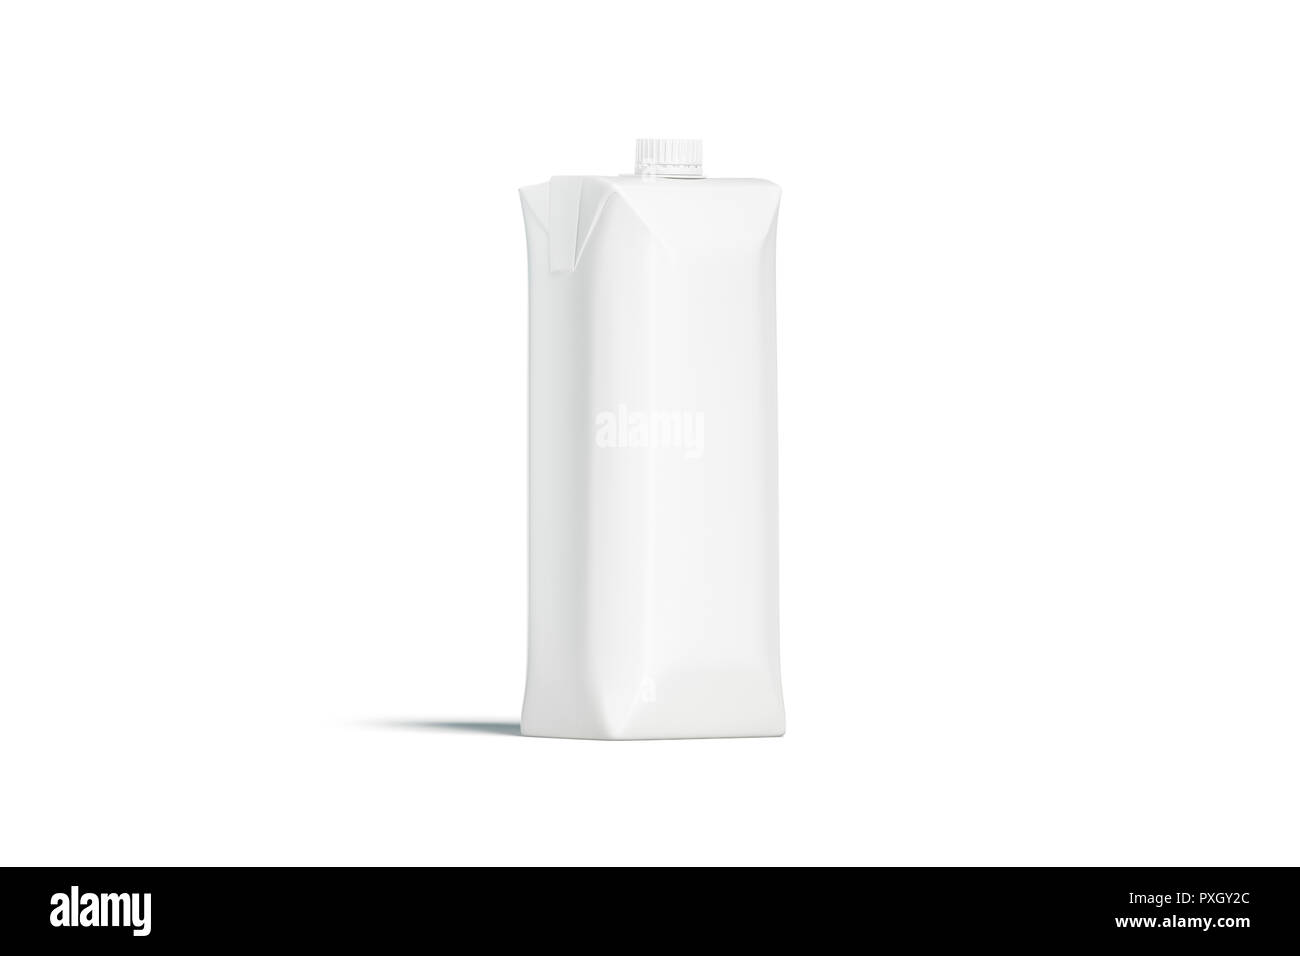 Blank white prisma juice pack with lid mockup, isolated, front view, 3d rendering. Empty aseptic pack with cap mock up. Clear carton container for drink template. - Stock Image